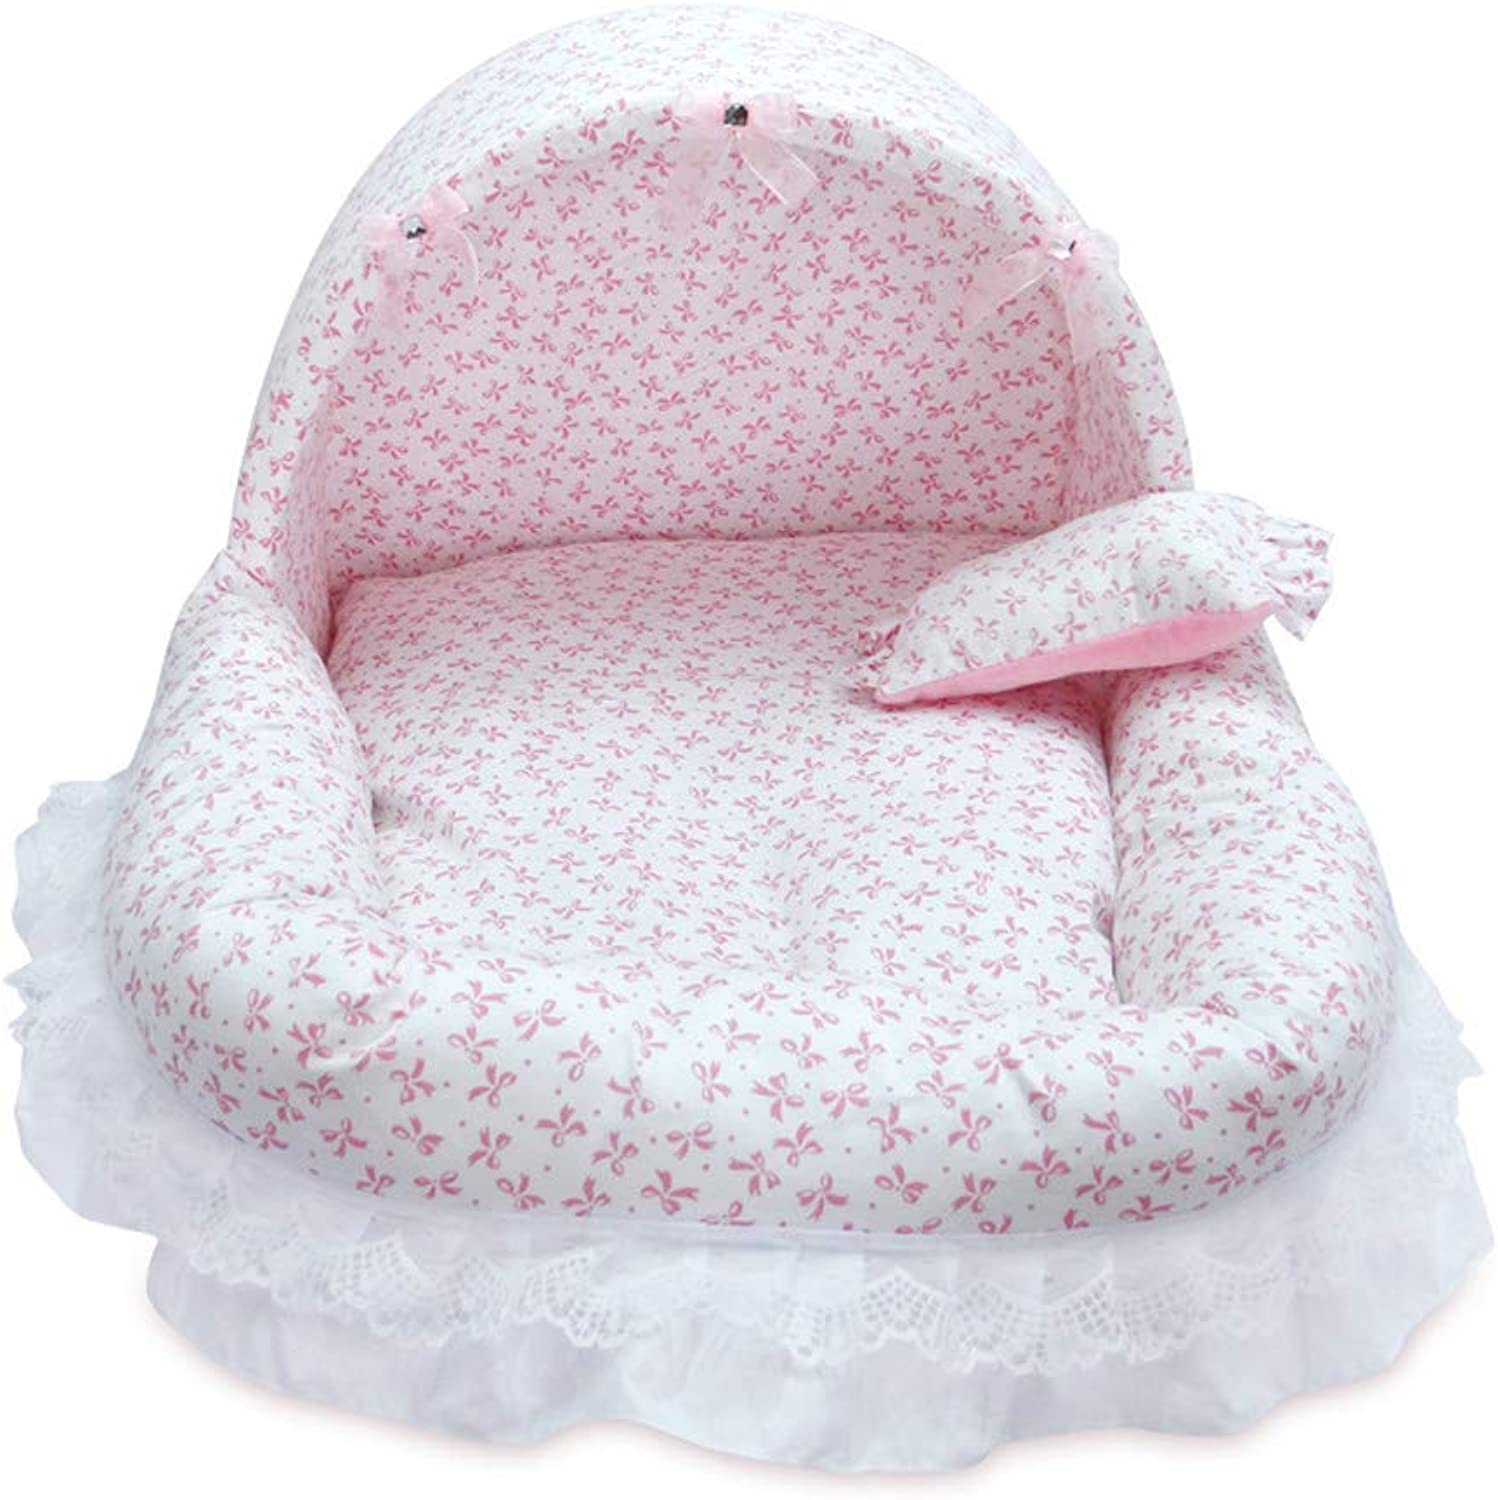 Dog Bed, pet Sofa Bed lace, Comfort Bed, Warm and Windproof pet nest,4,38  34  30cm